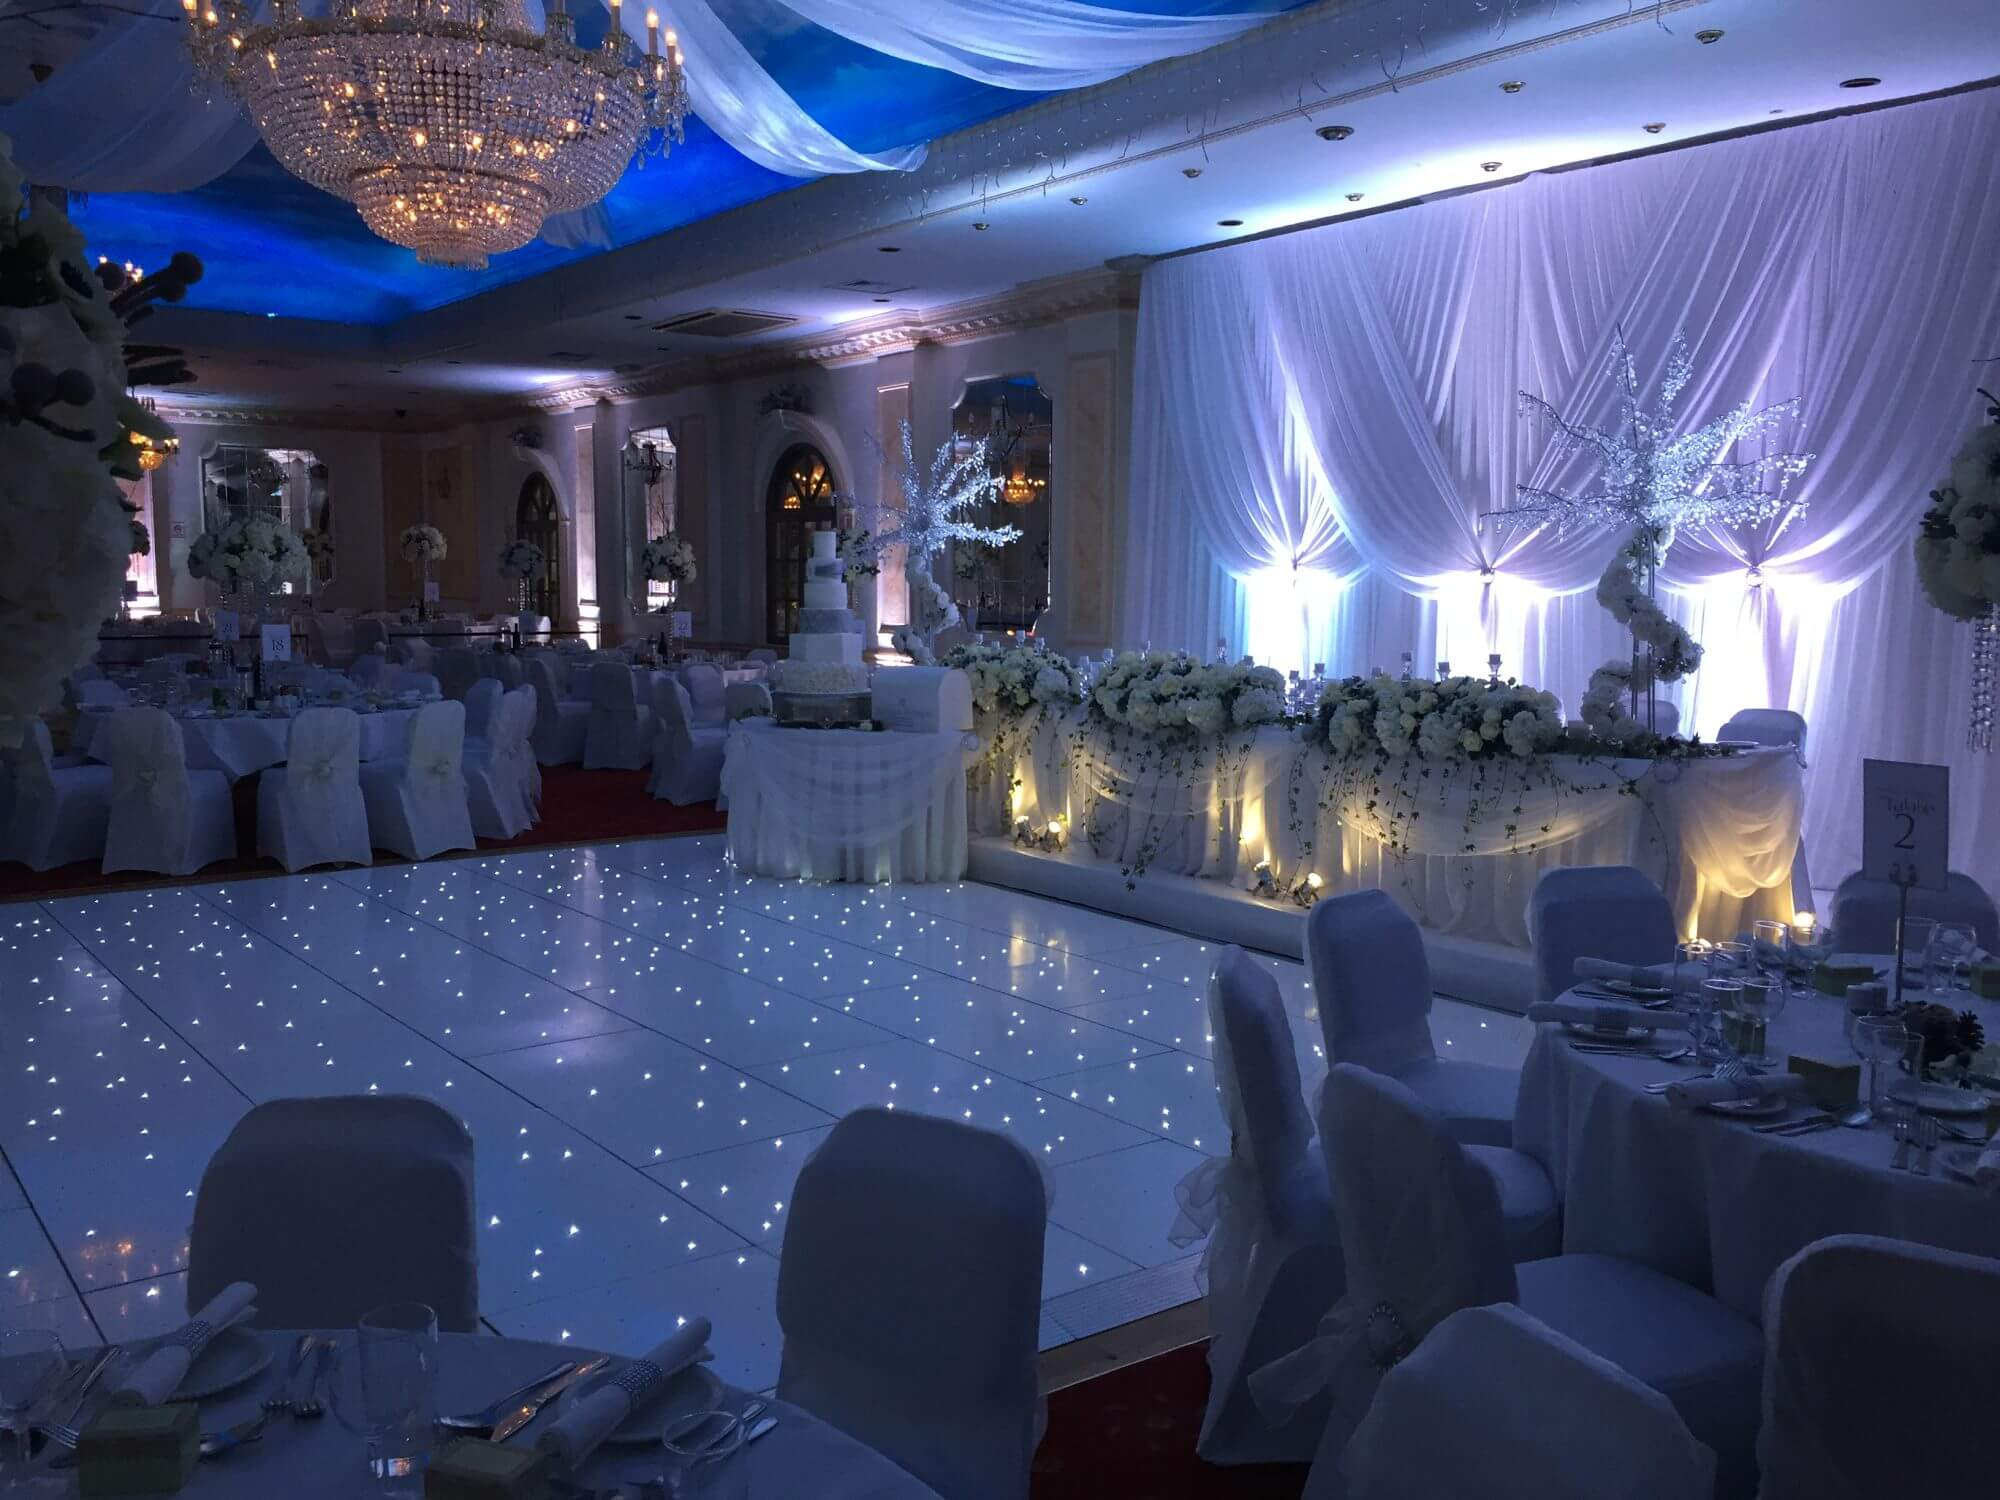 Regency Banqueting Suite Wedding Venues London and Corporate Events Venue